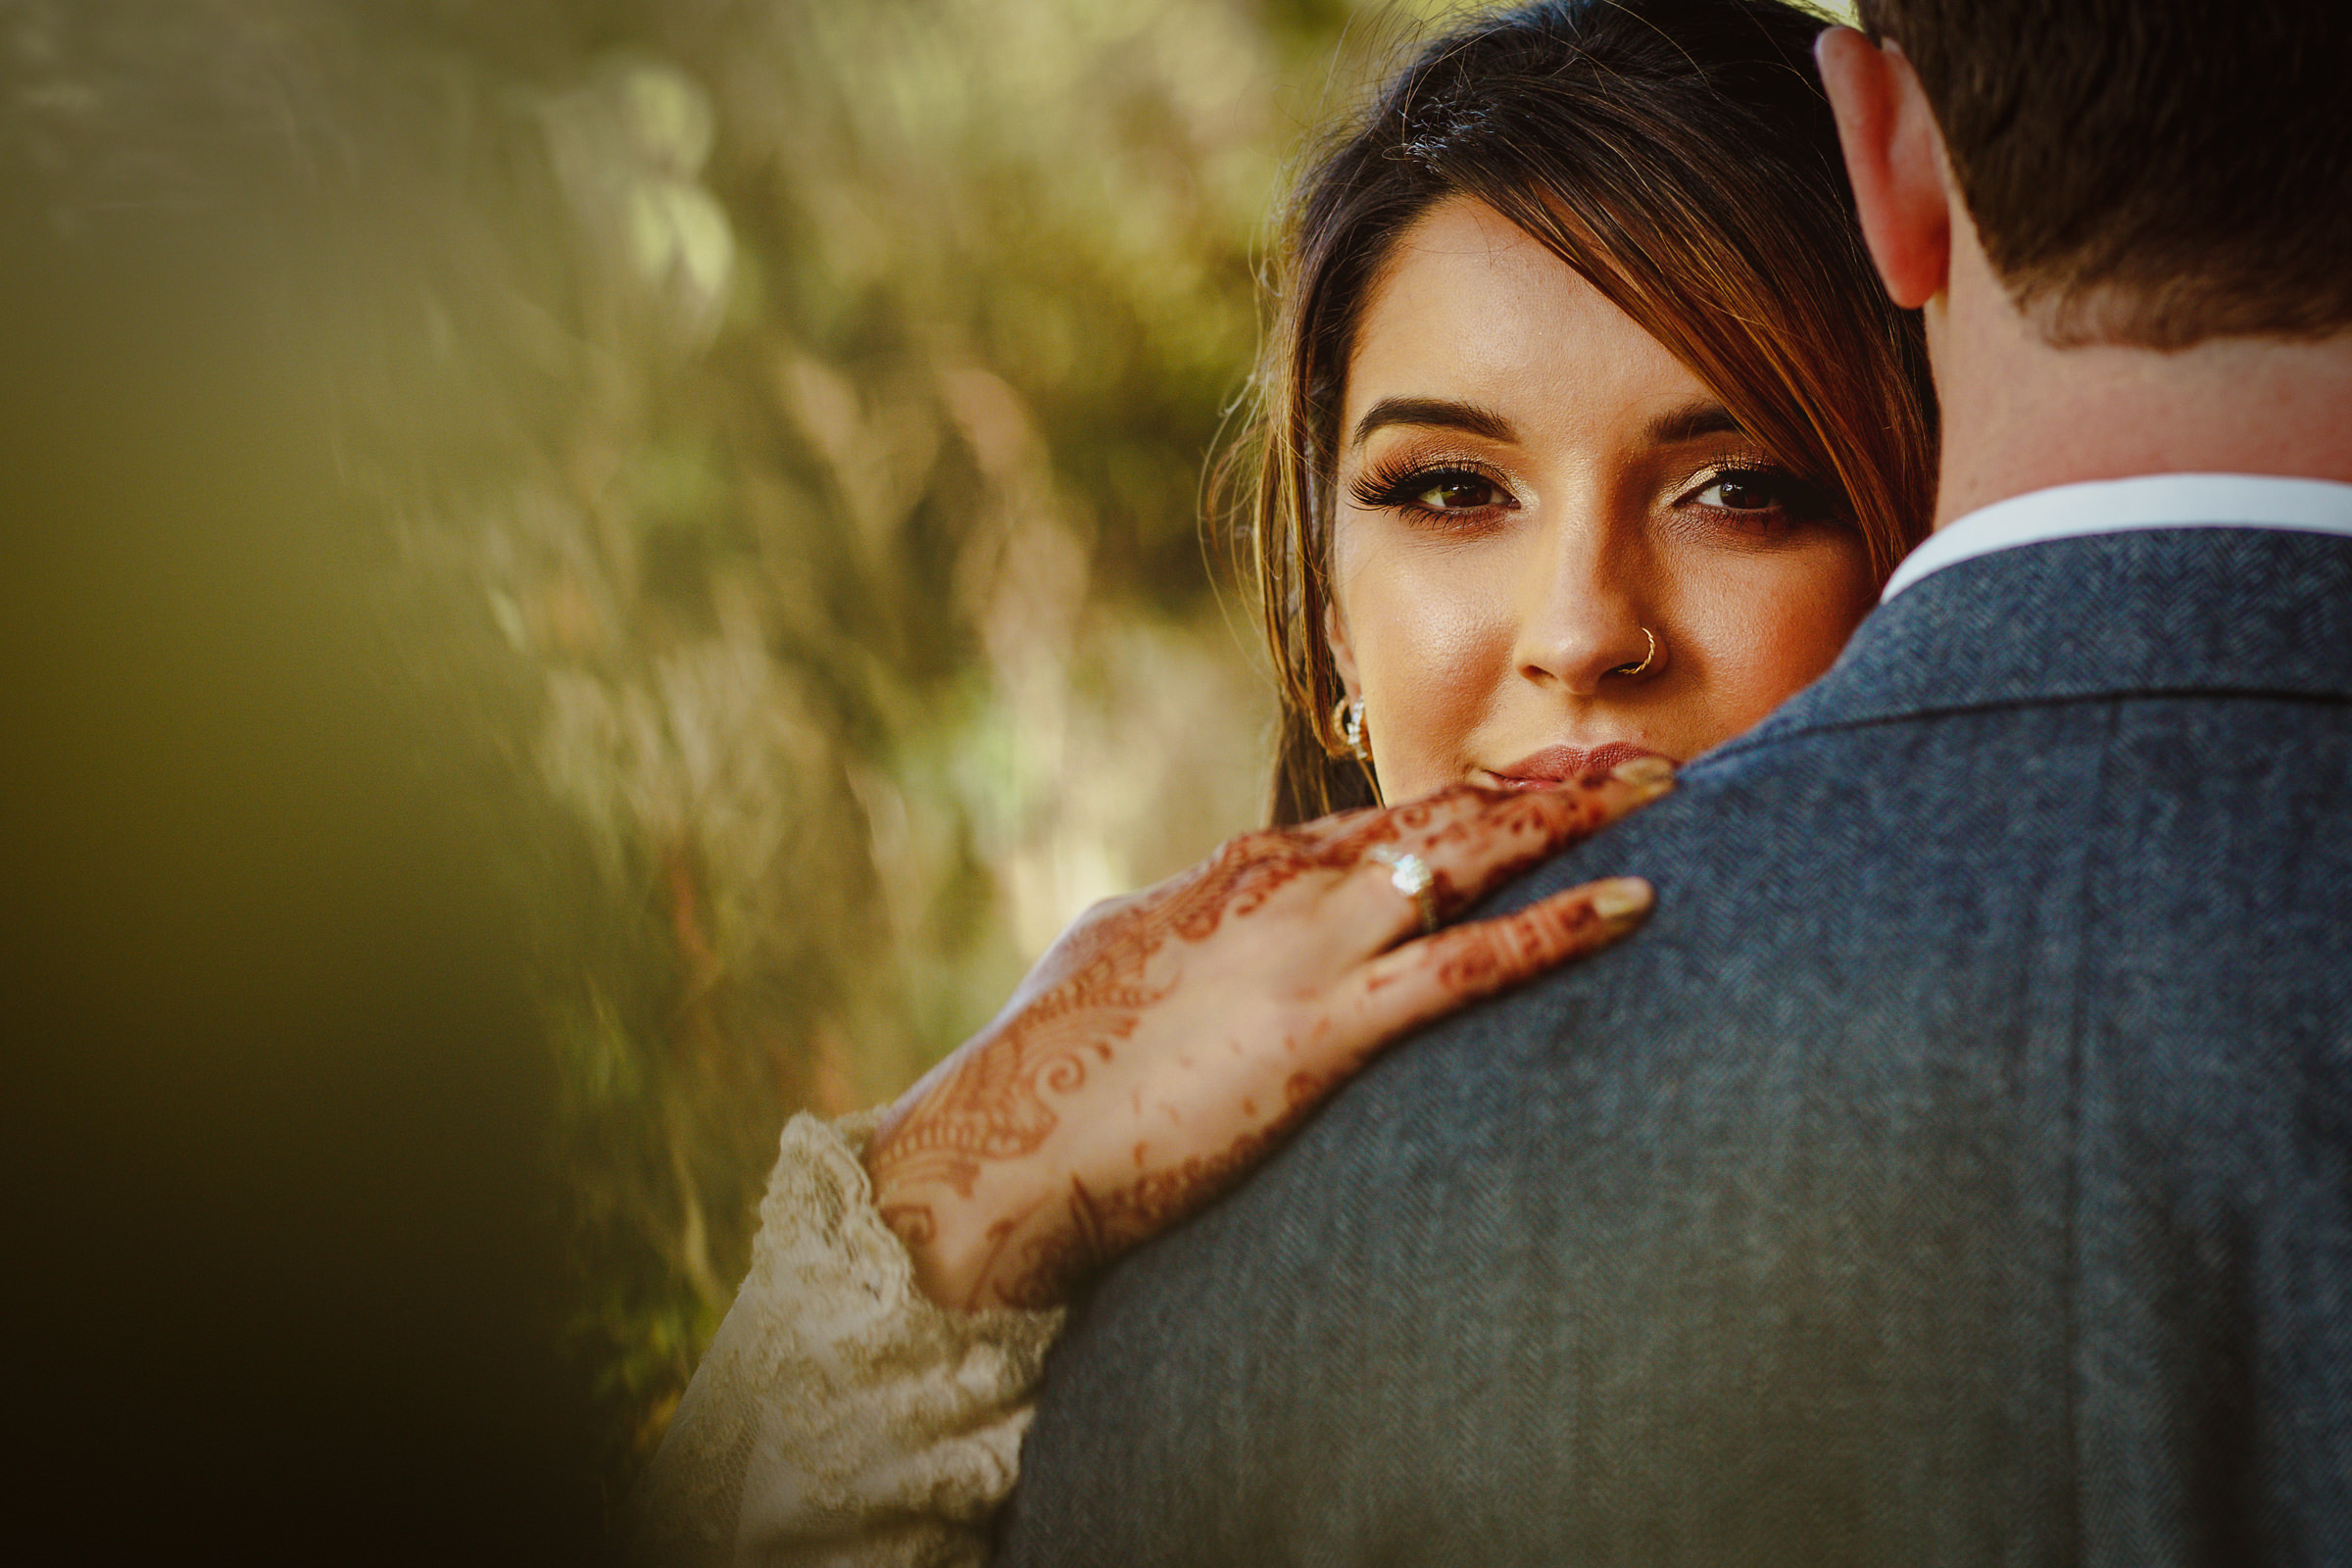 bride portrait highlighting ring and henna hands - photo by Tomas Juskaitis Photography